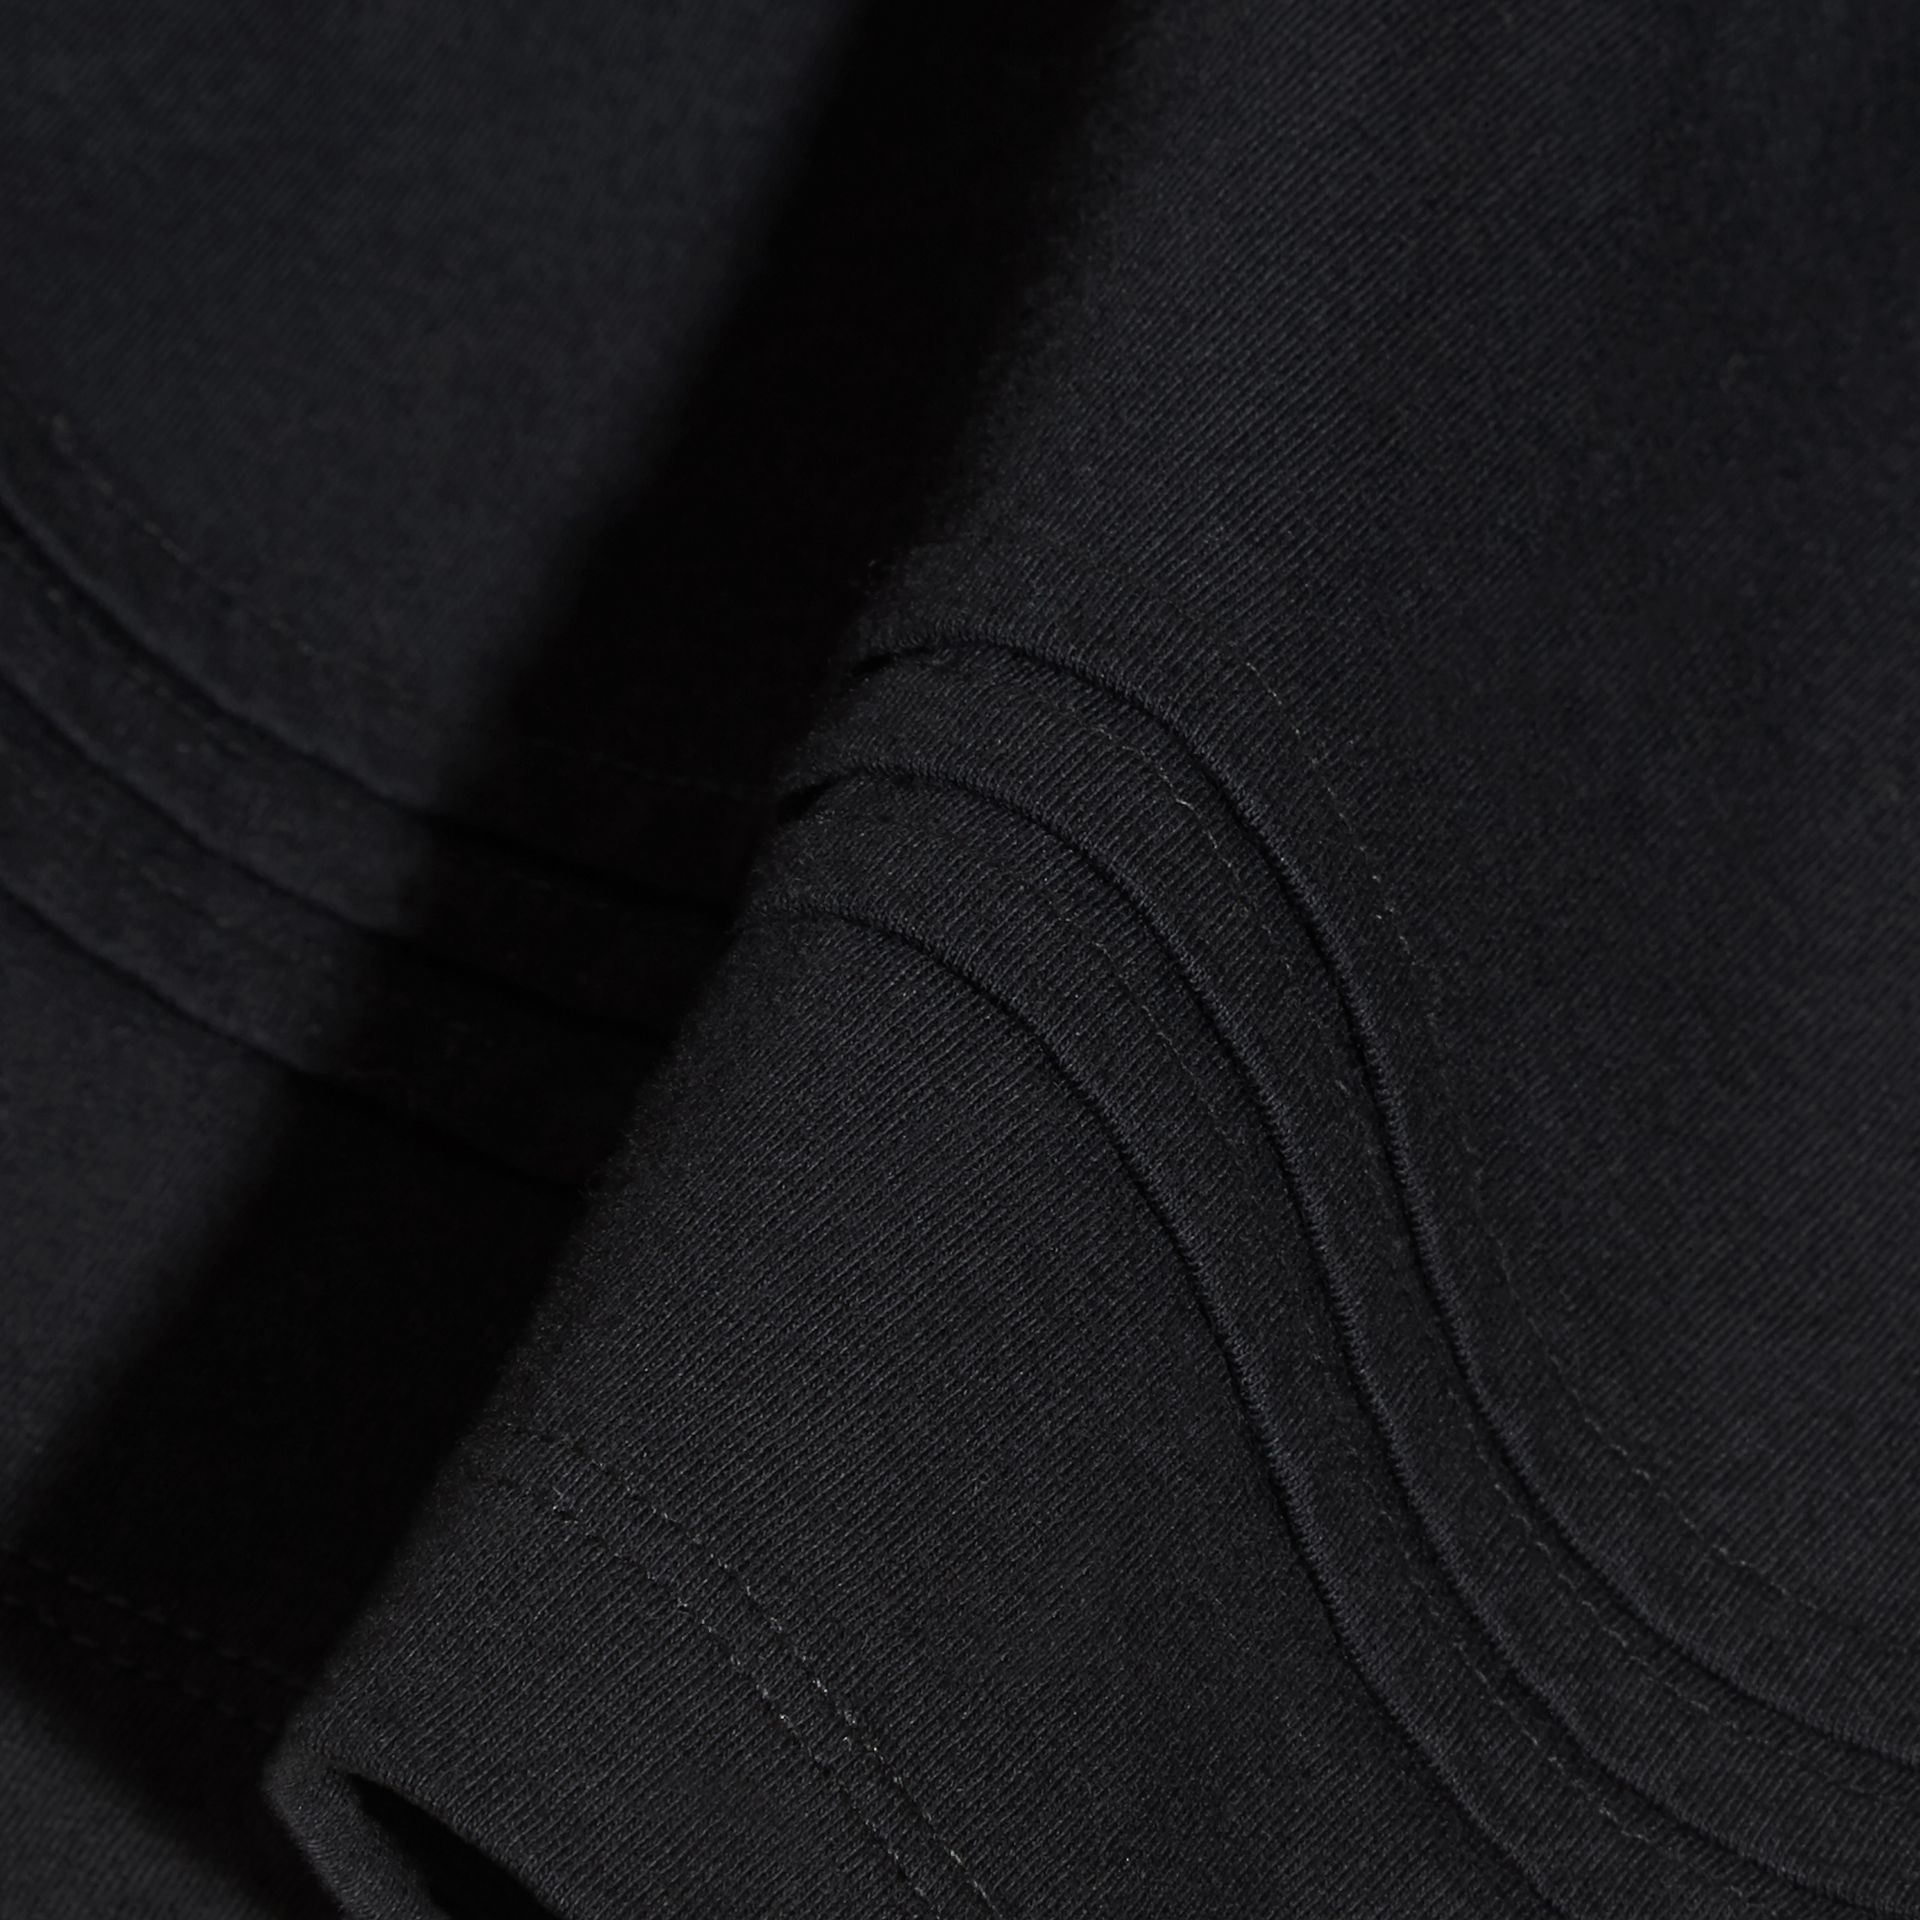 Pleat Detail Check Cotton T-Shirt - gallery image 2